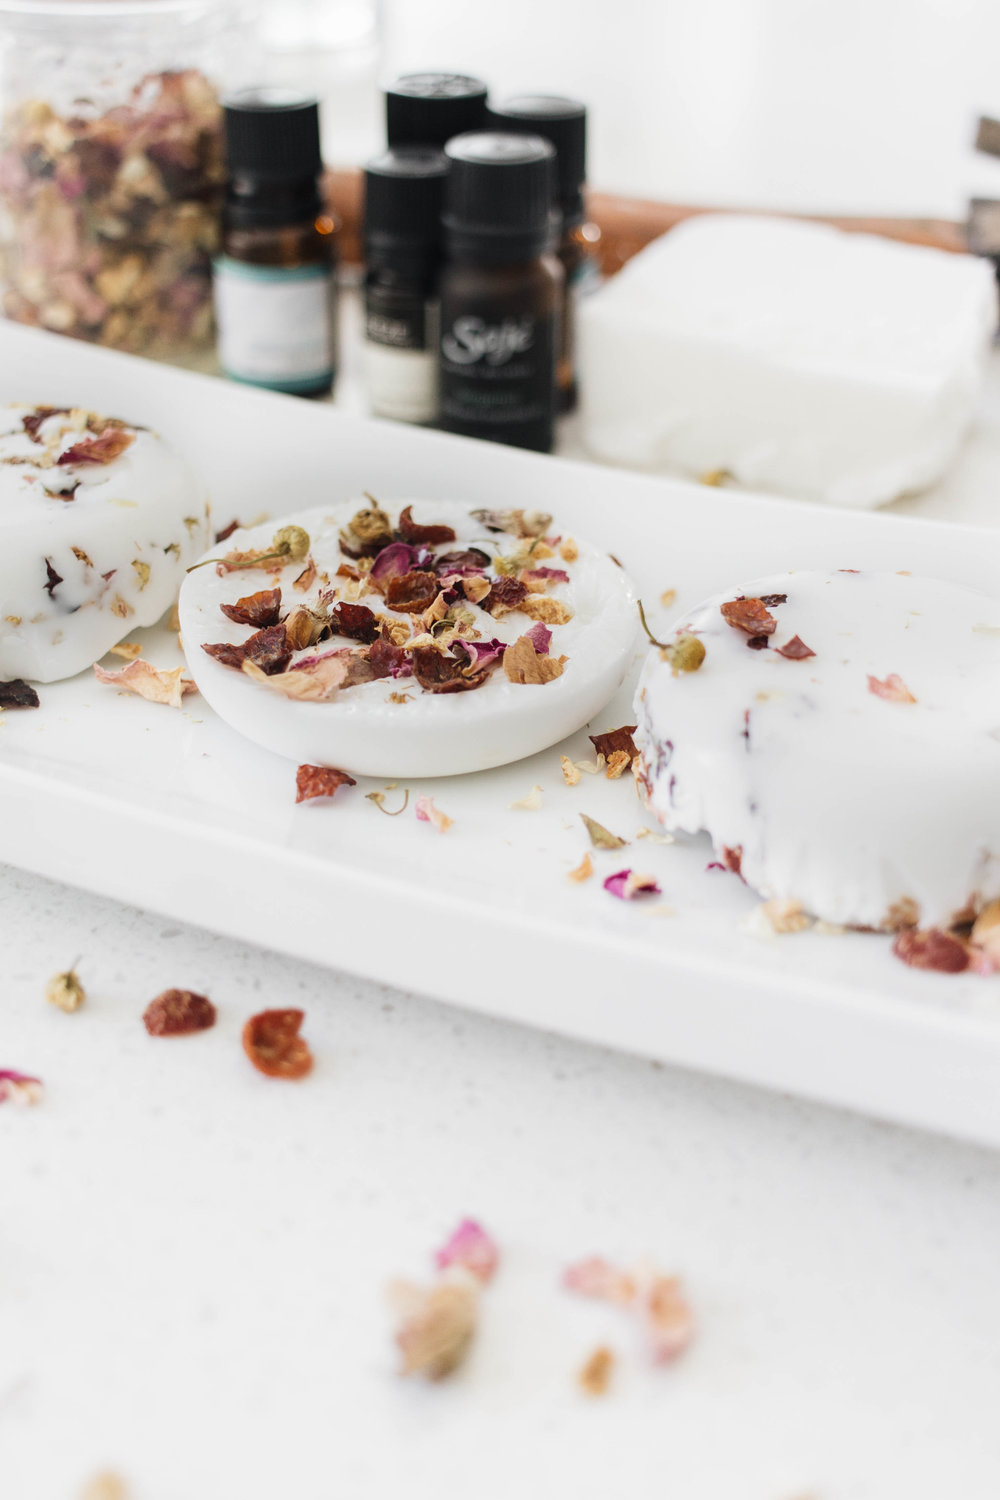 diy-soap-with-essential-oils-dried-flowers-3.jpg